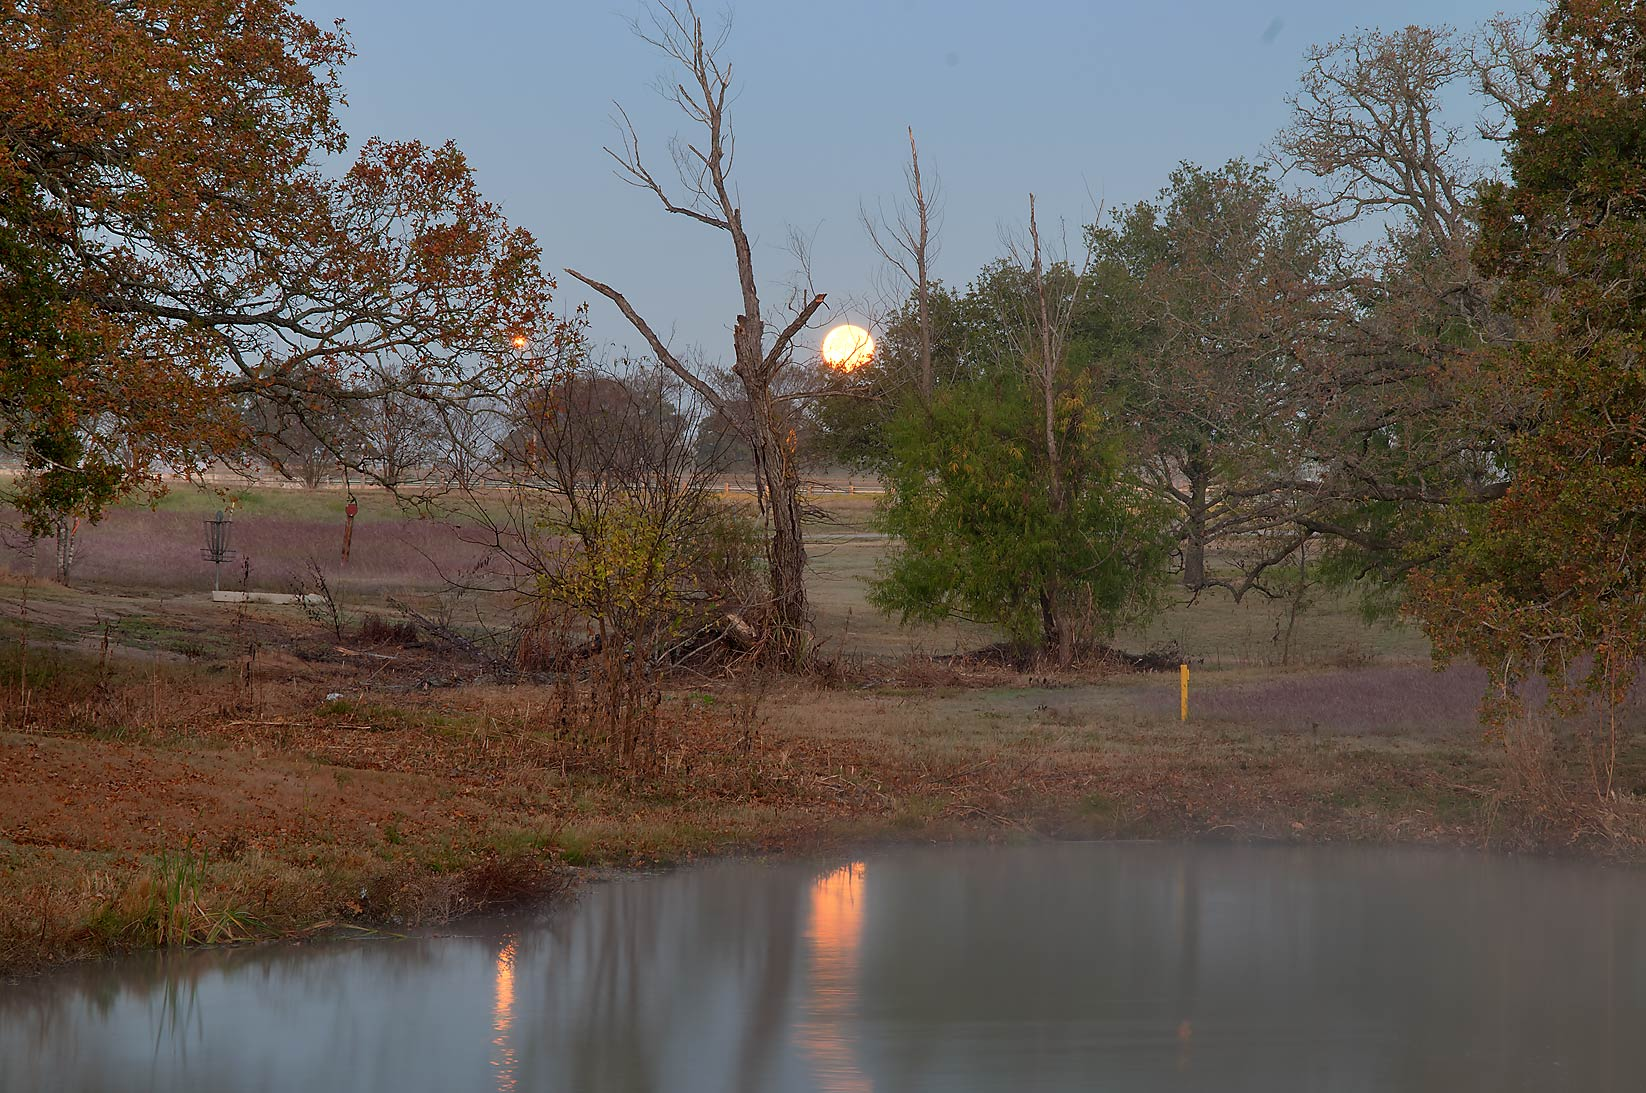 Moonset over a pond of Research Park on campus of...M University. College Station, Texas